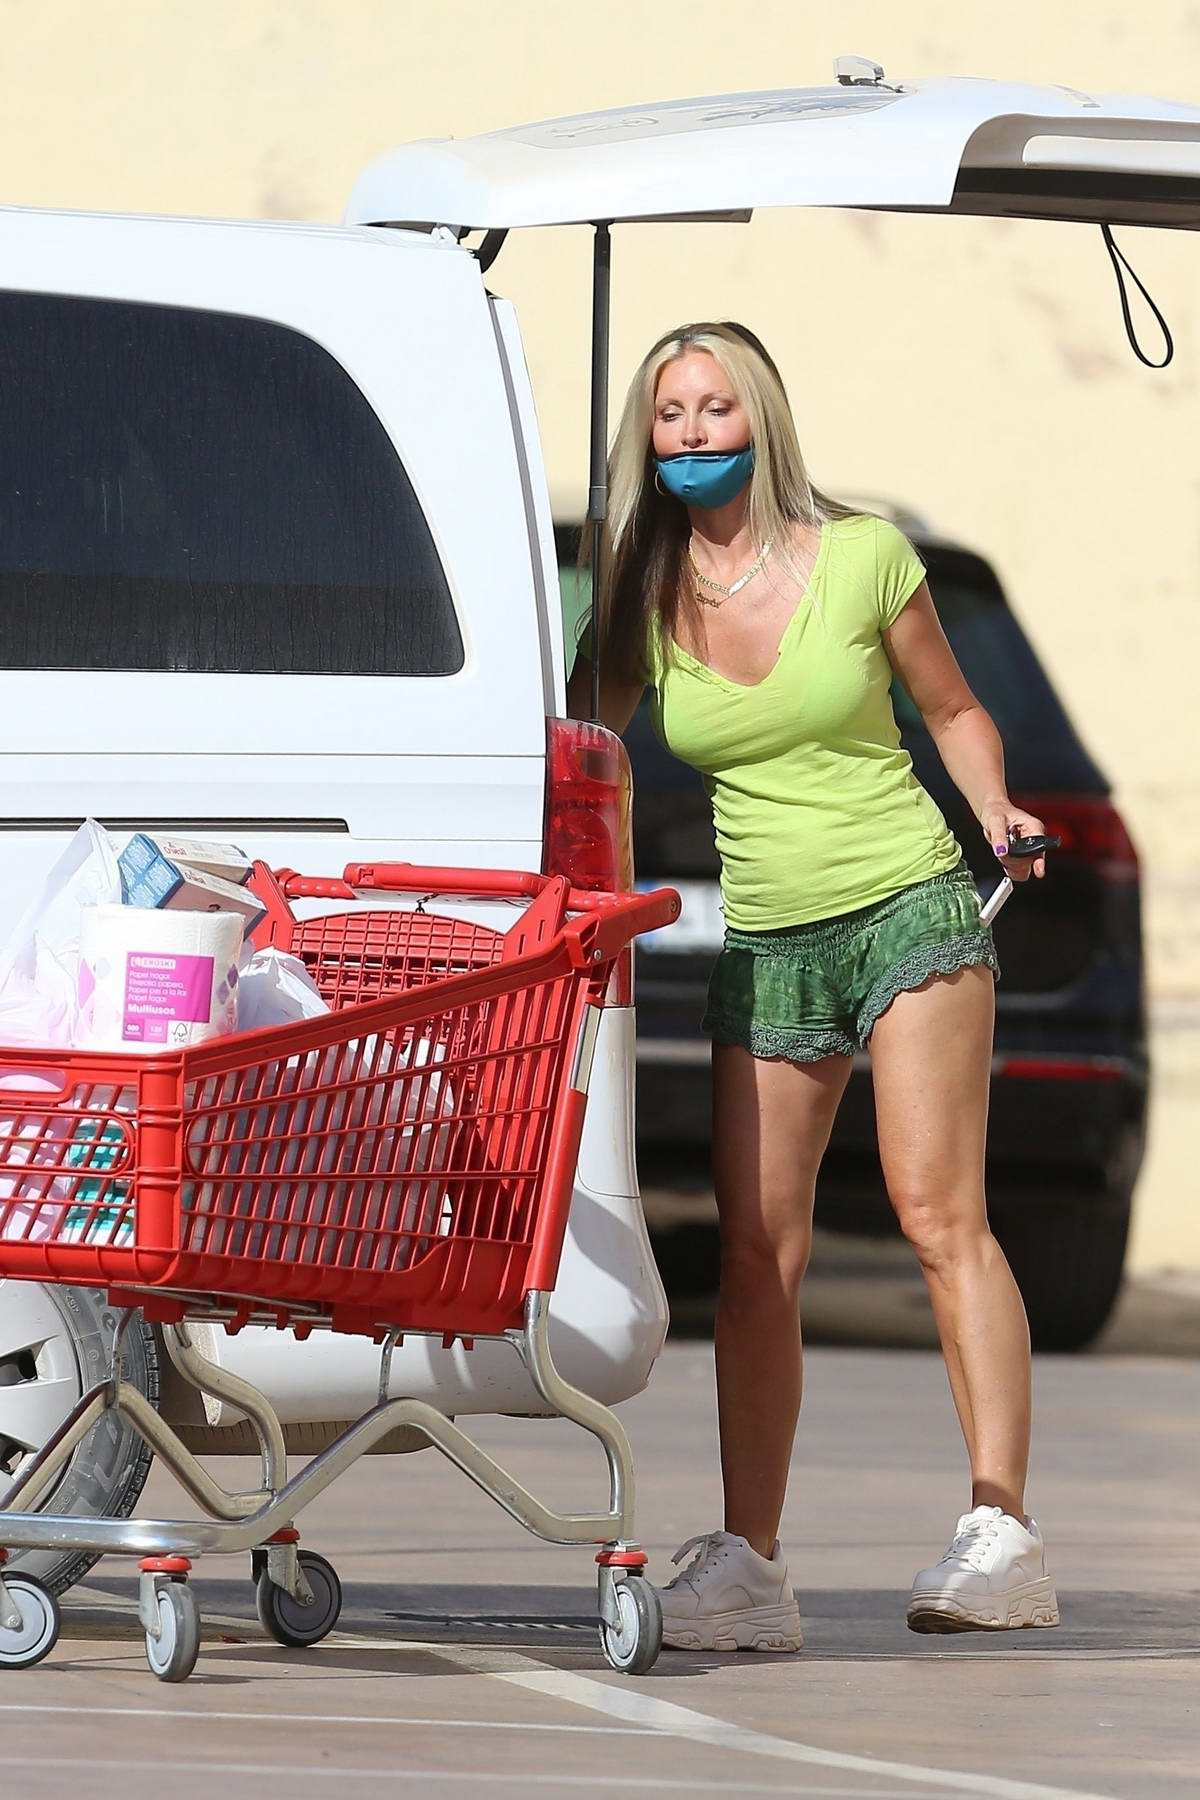 Caprice Bourret steps out in tiny shorts while picking up some groceries at a supermarket in Ibiza, Spain